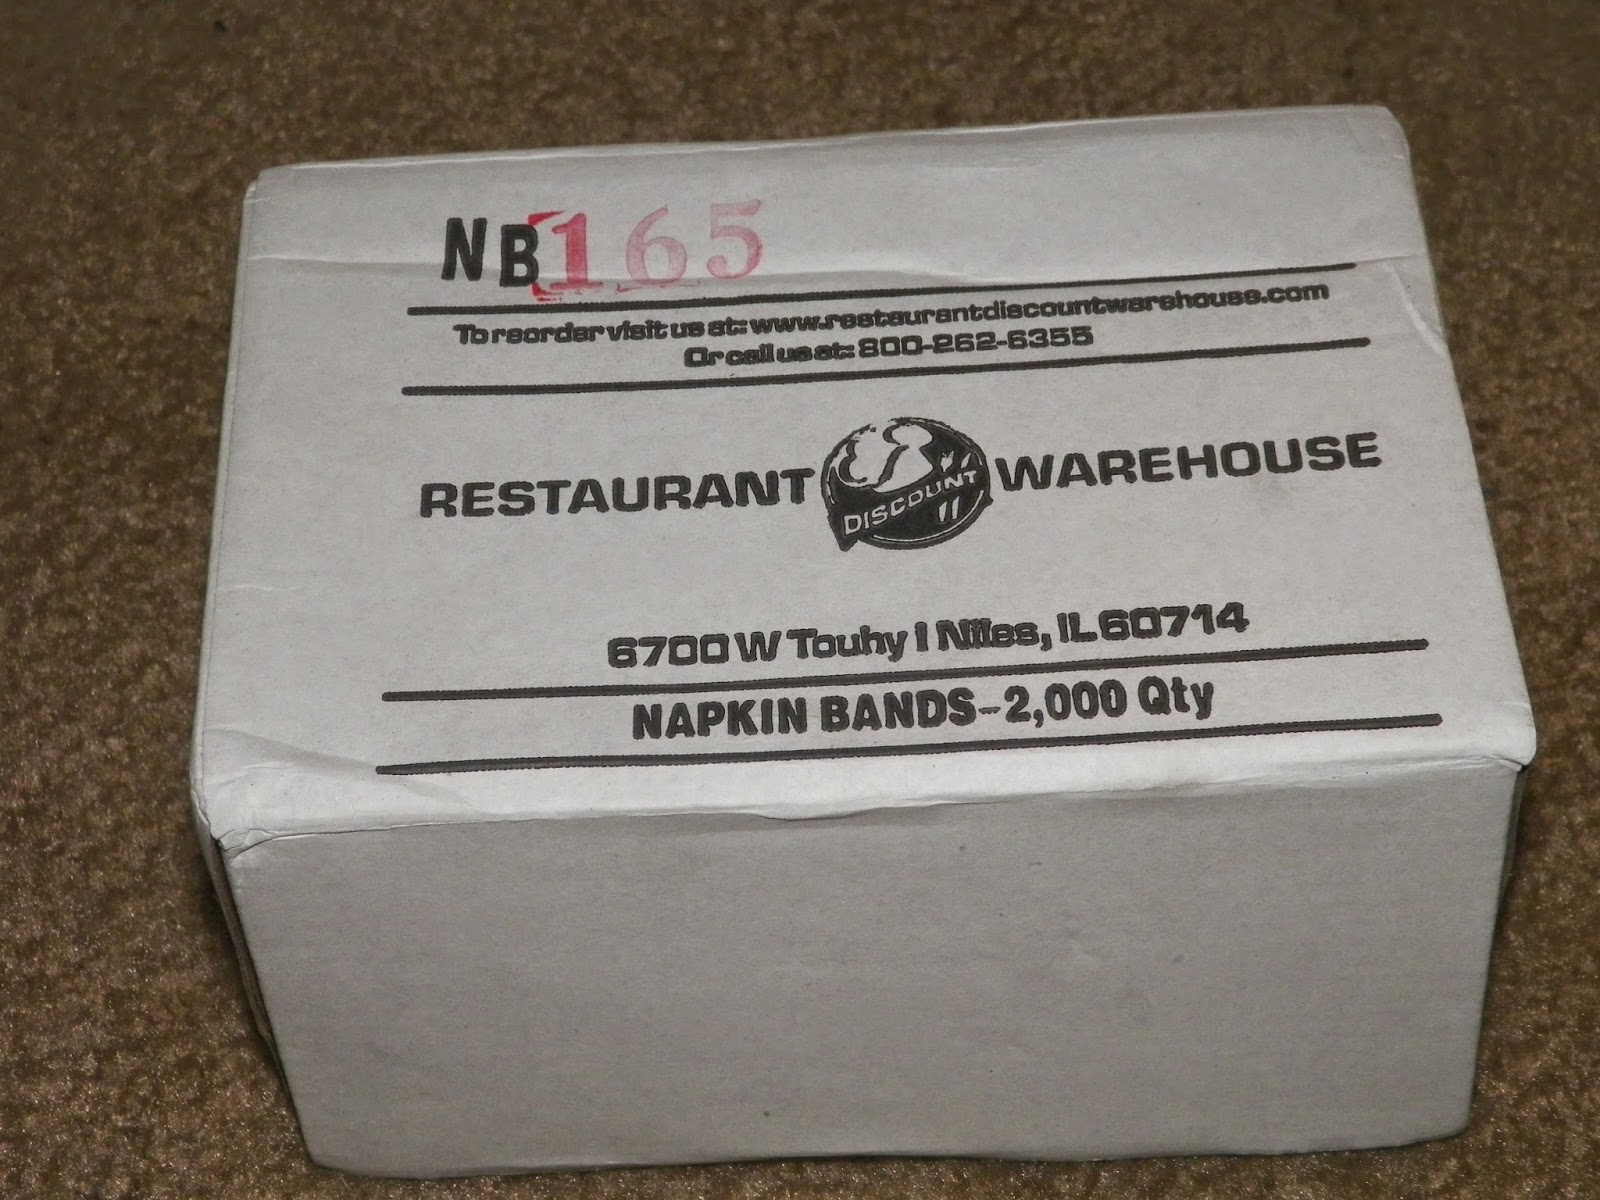 RestaurantWarehouseNapkinBands.jpg